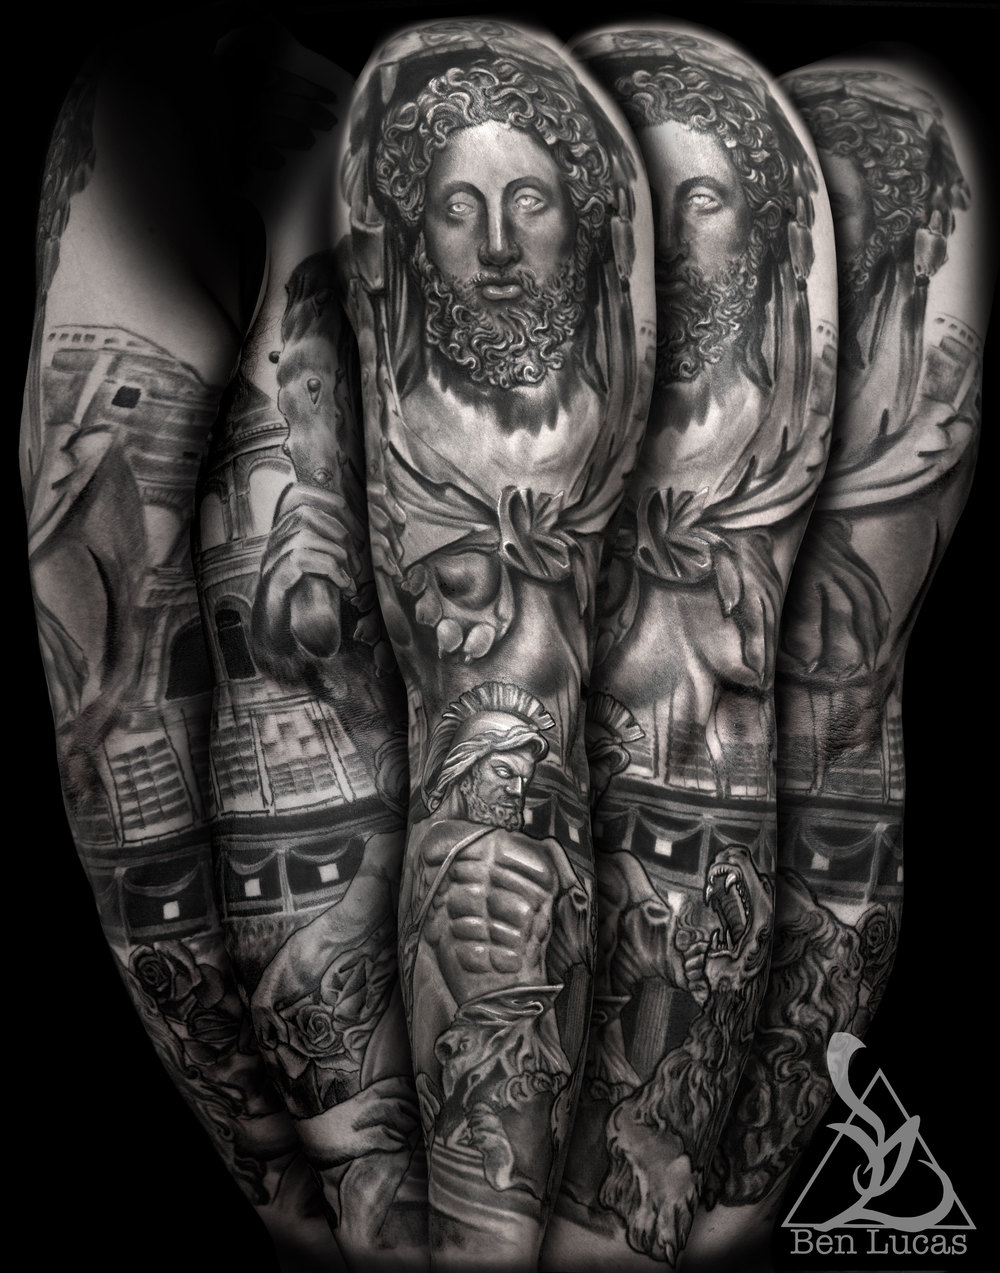 Hercules gladiator in the coliseum fighting the lion   in the   roman coliseum roman statue sleeve tattoo.